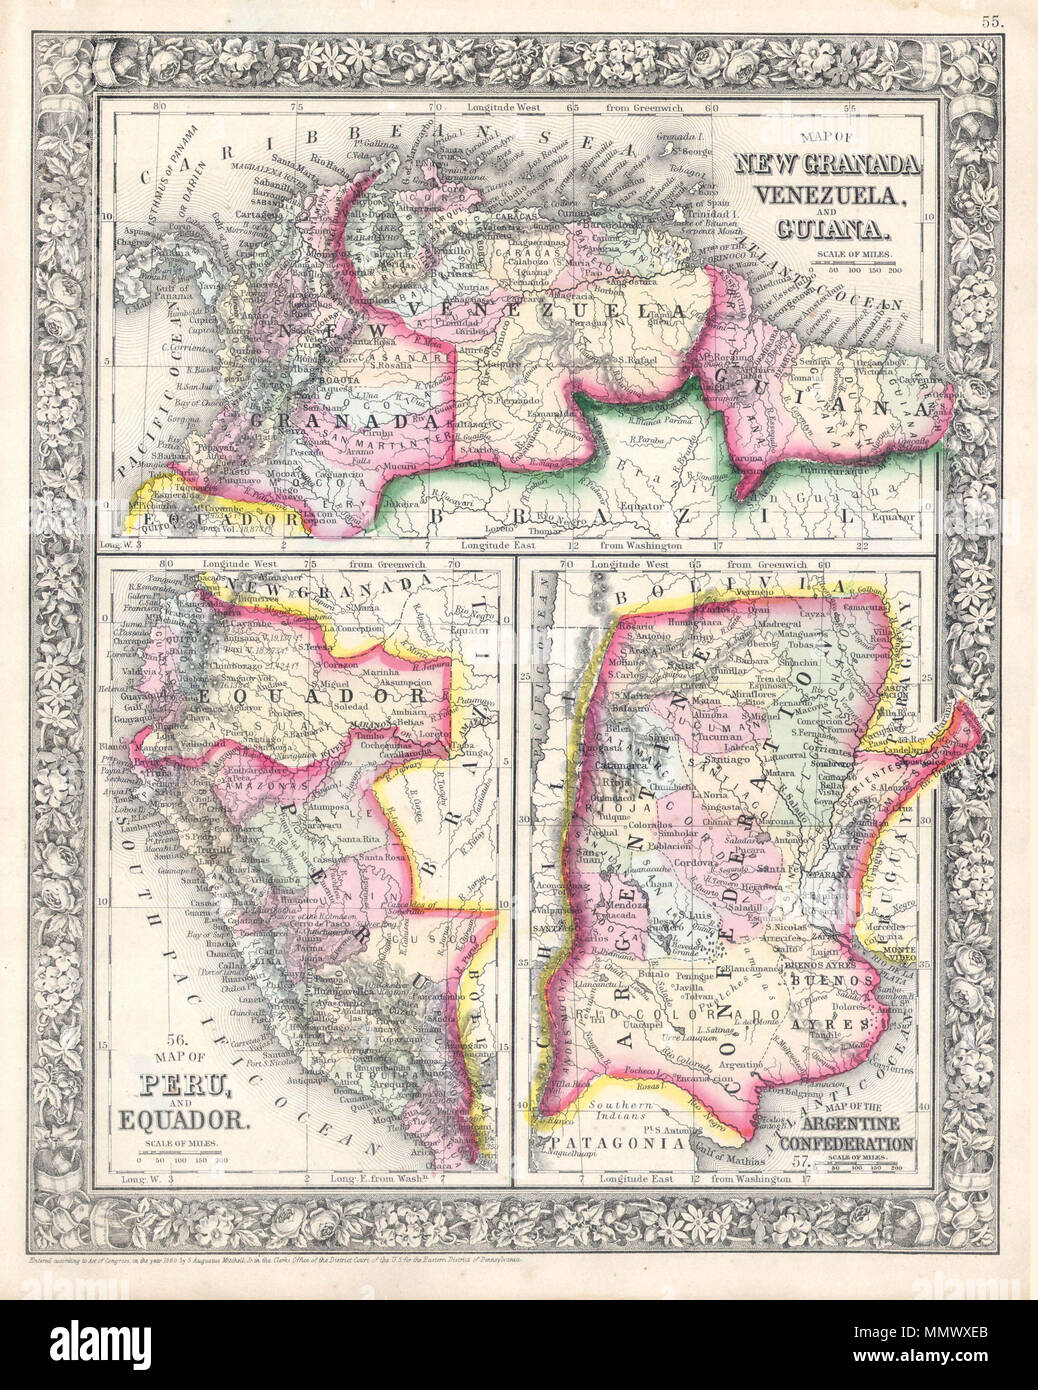 .  English: A beautiful example of S. A. Mitchell Jr.'s 1864 three map sheet depicting parts of South America. The first map shows New Granada (Columbia), Venezuela and Guiana. The second map, in the lower left quadrant, depicts Peru and Equador (Ecuador). The third map, in the lower right quadrant, features the Argentine Confederation. One of the most attractive American atlas maps of this region to appear in the mid 19th century. Features the floral border typical of Mitchell maps from the 1860-65 period. Prepared by S. A. Mitchell for inclusion as plate no. 55 in the 1864 issue of Mitchell' Stock Photo